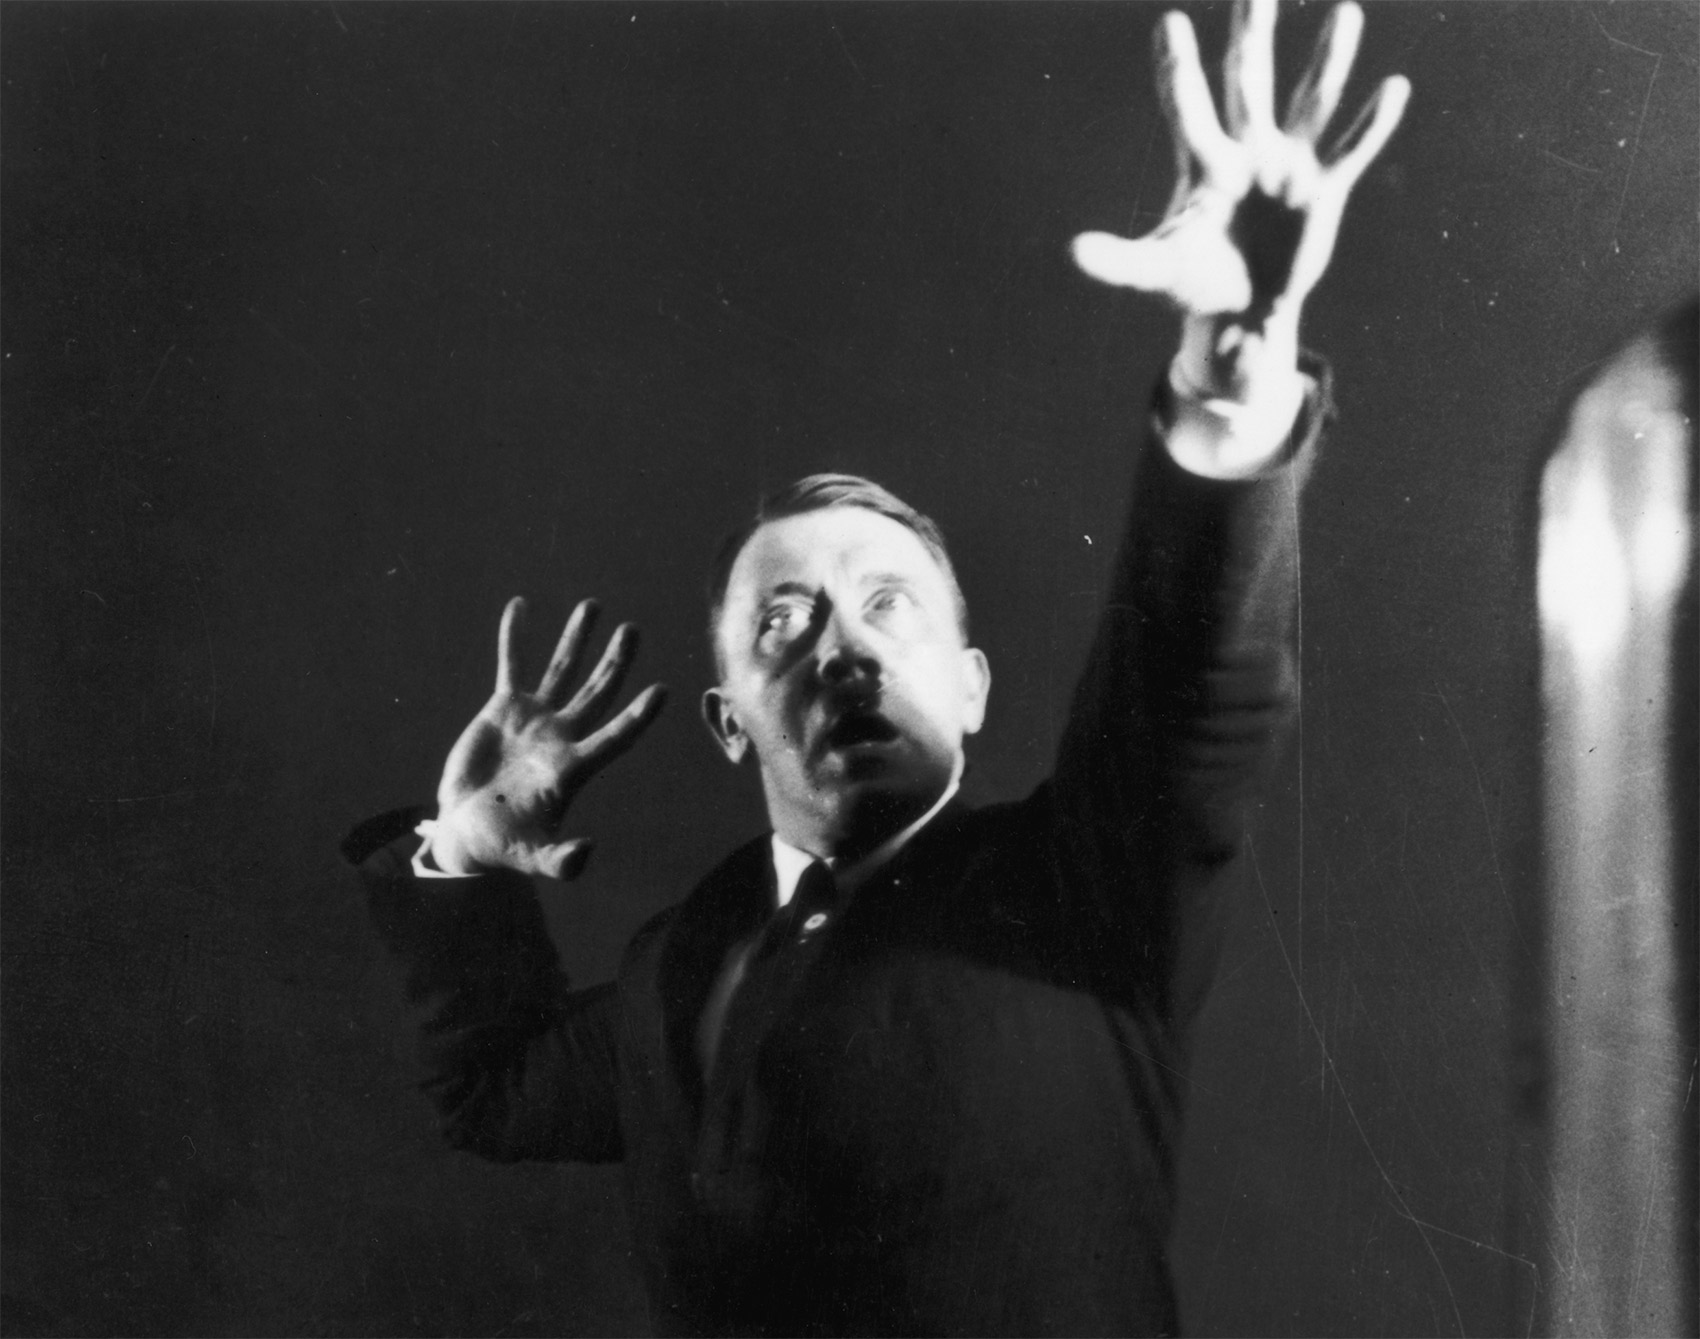 Hitler miming gestures to a record of his speeches; part of a series of photographs he commissioned in 1925 to aid self-analysis and improve his hold over an audience.